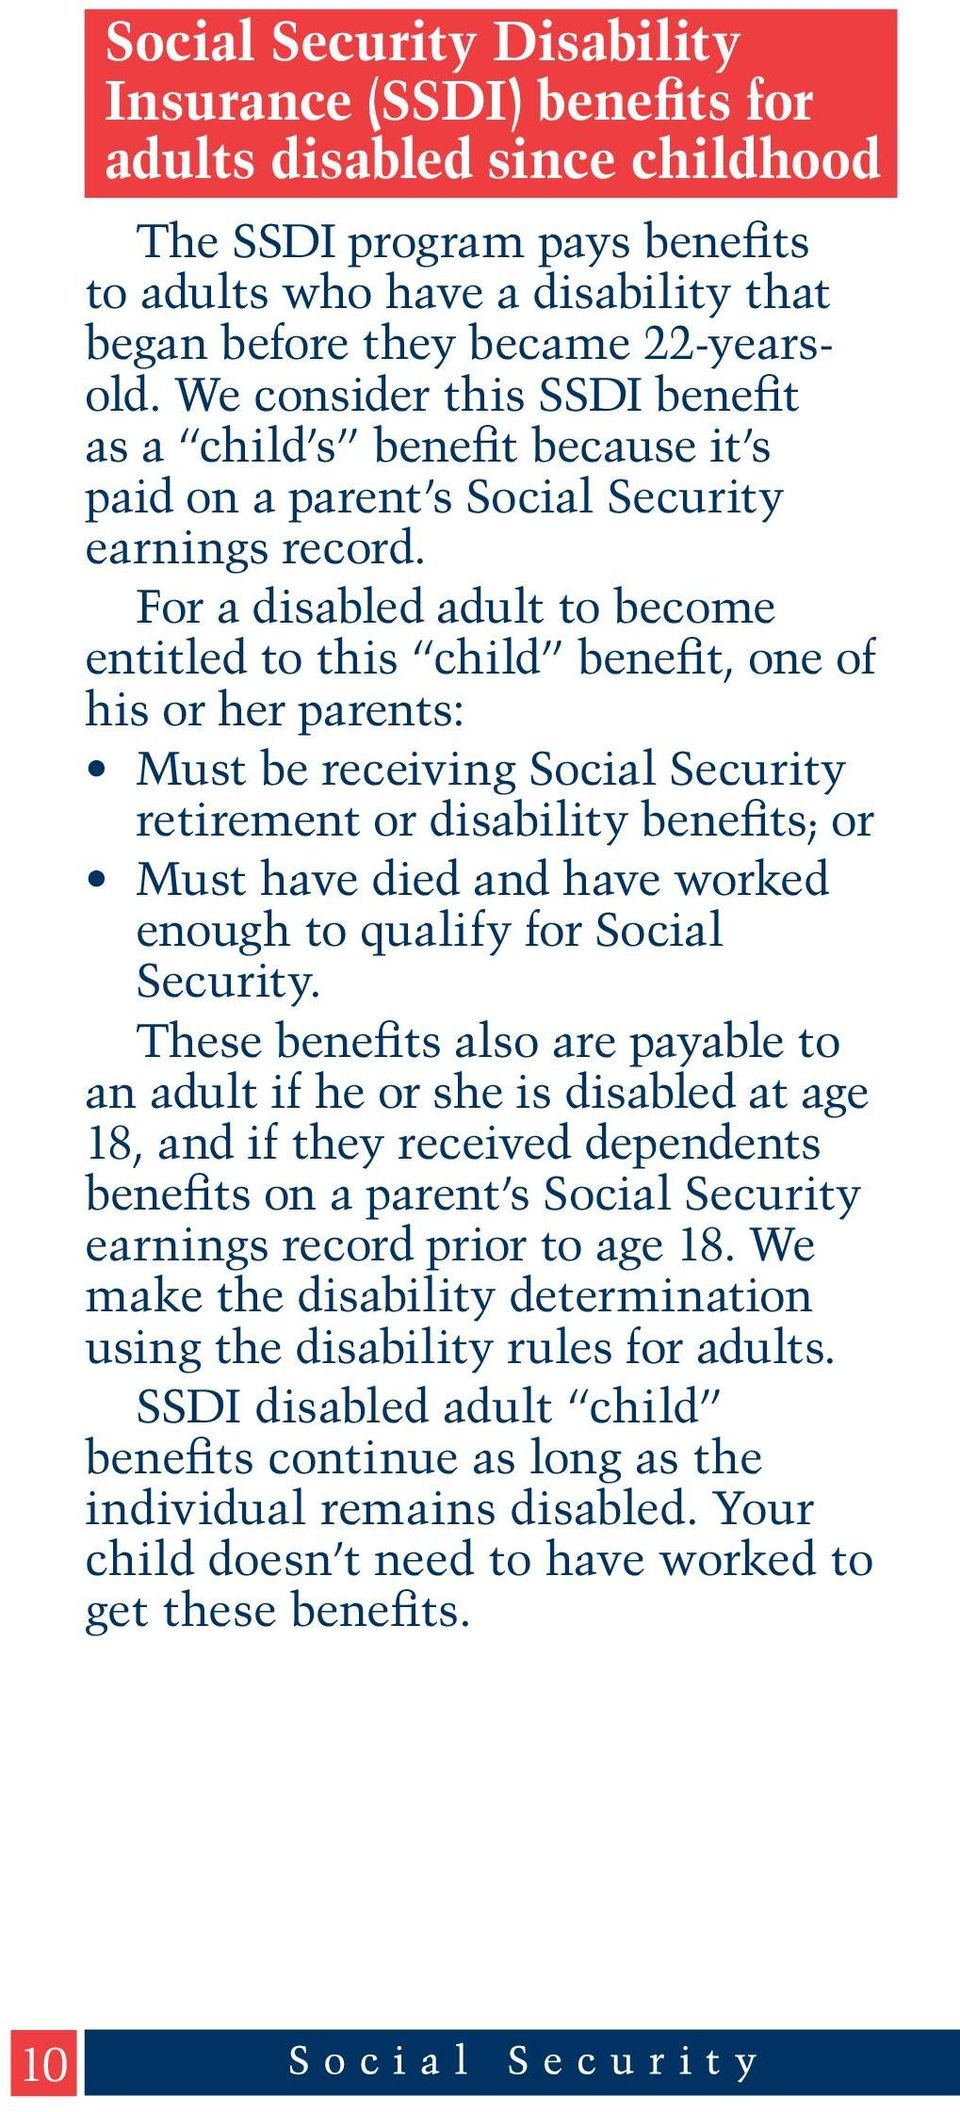 For a disabled adult to become entitled to this child benefit, one of his or her parents: Must be receiving Social Security retirement or disability benefits; or Must have died and have worked enough